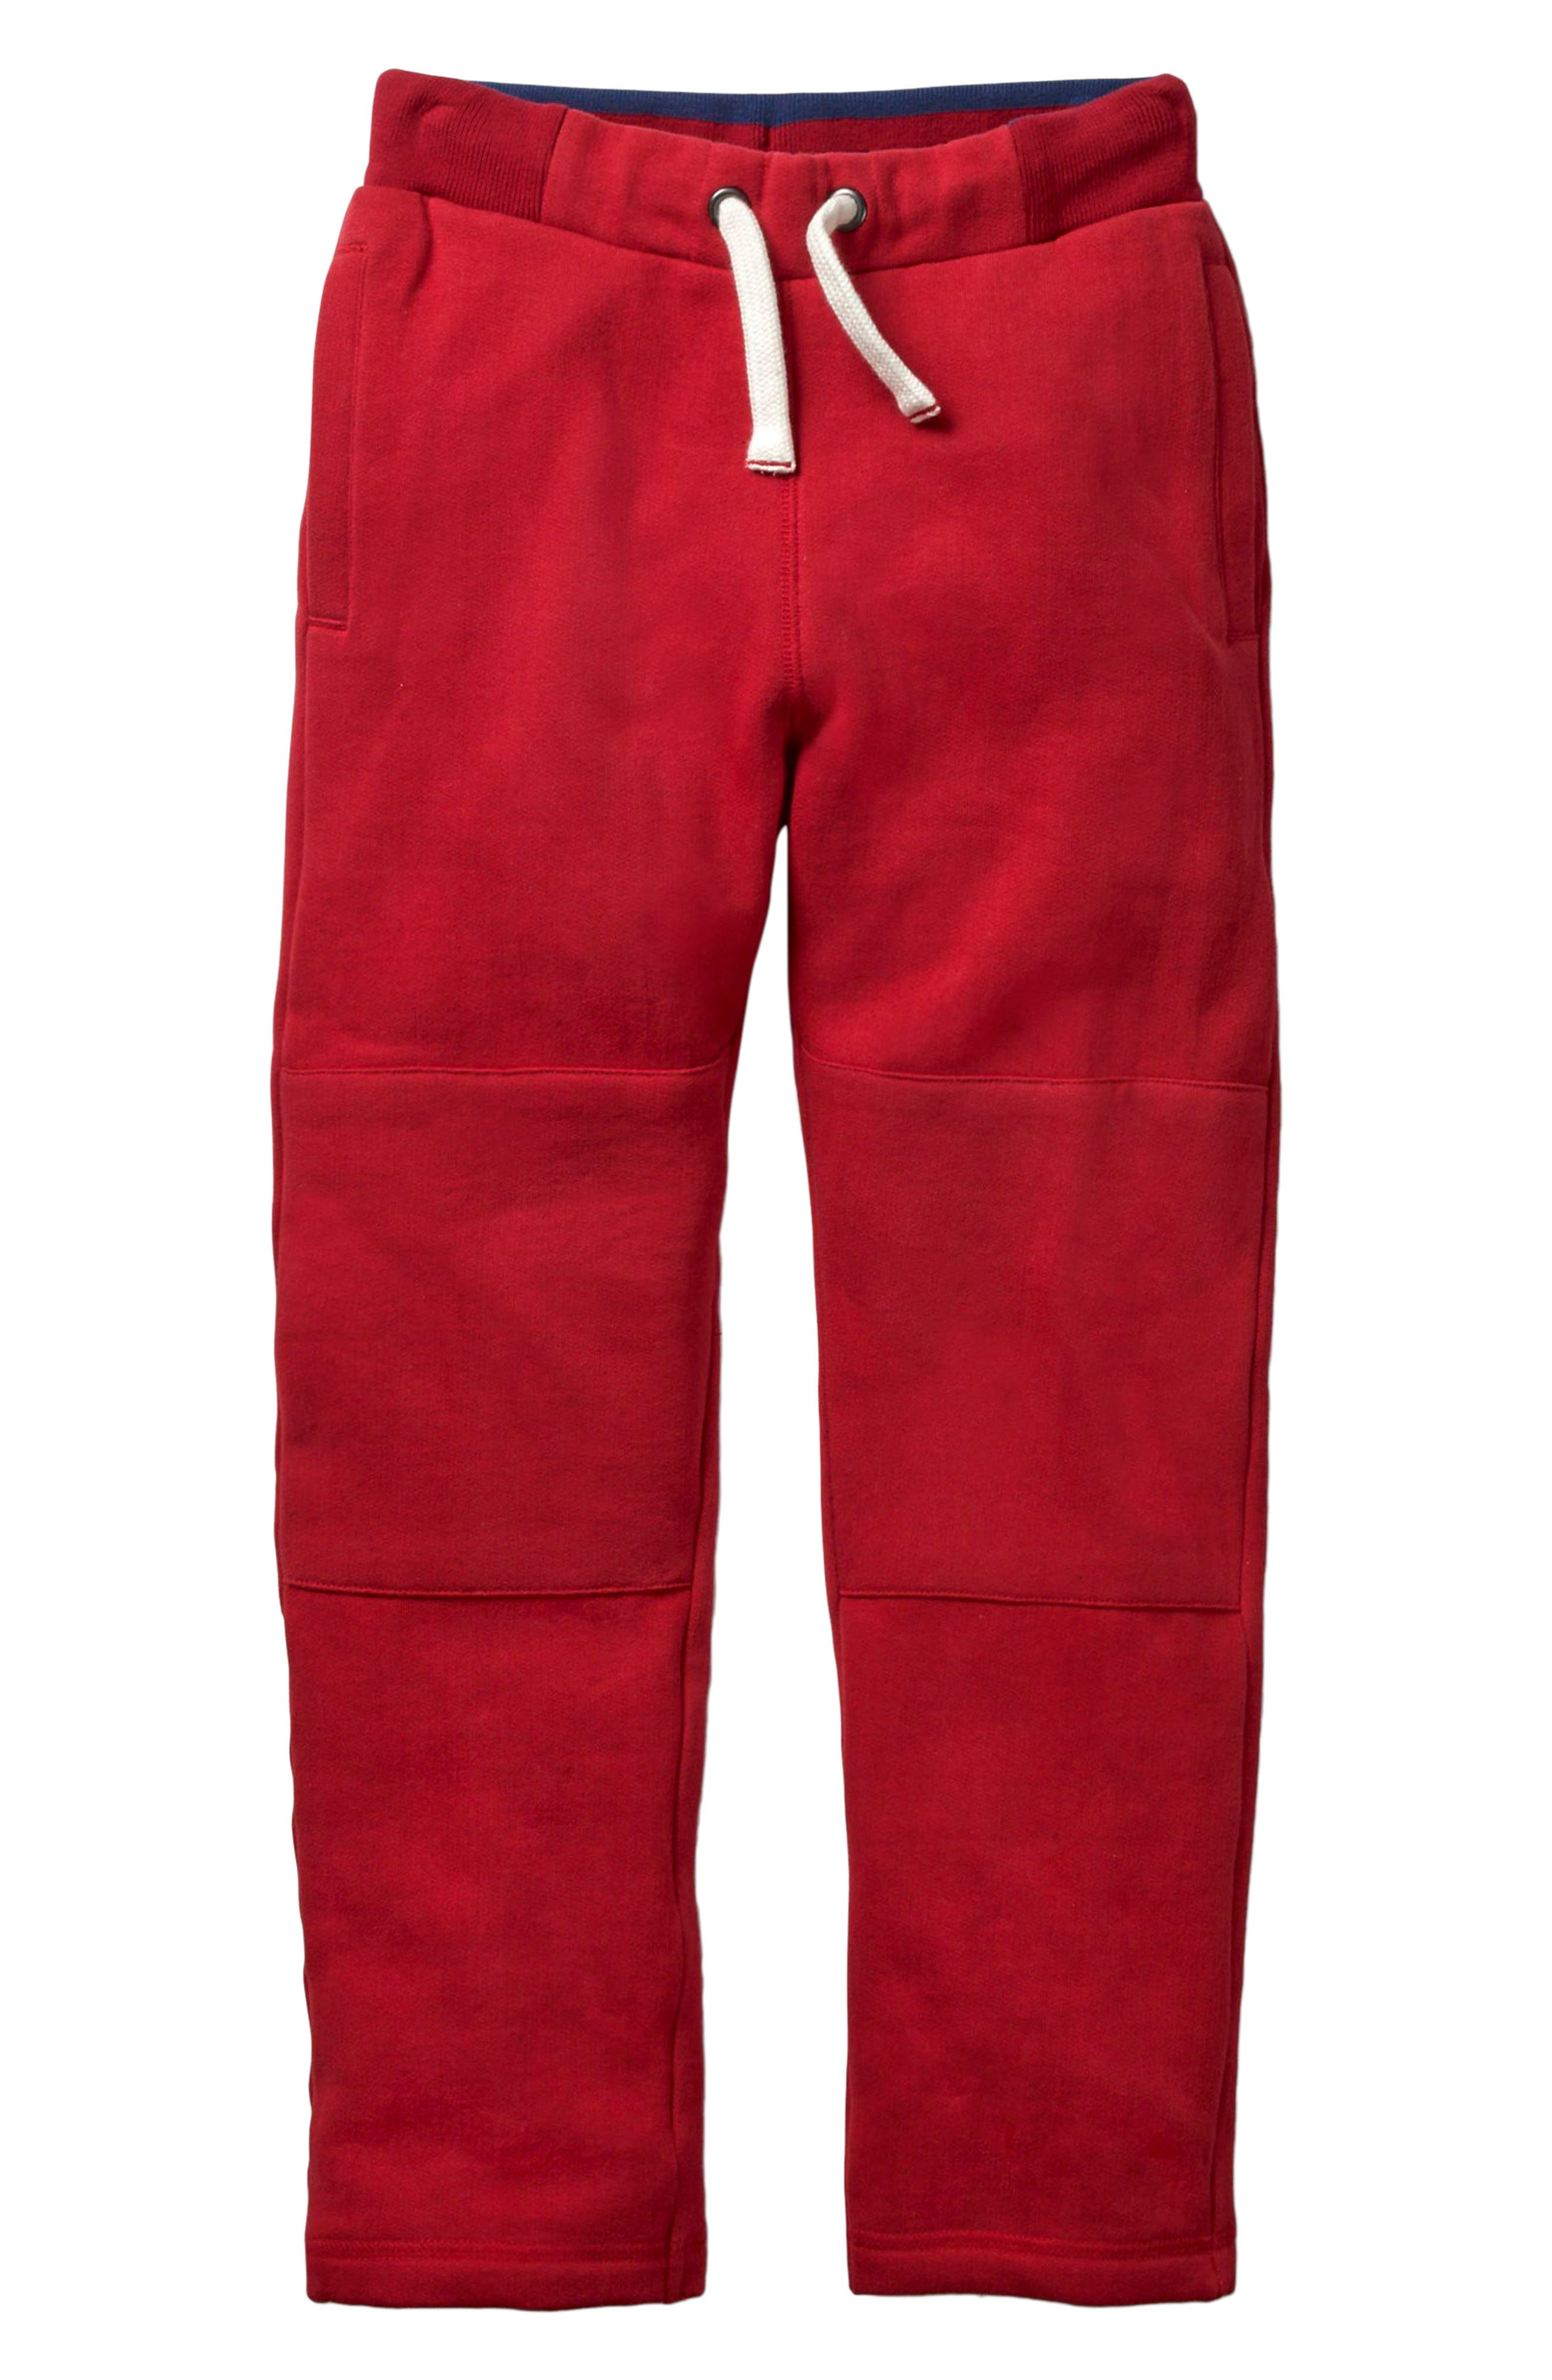 Warrior Knee Sweatpants,                         Main,                         color, Engine Red